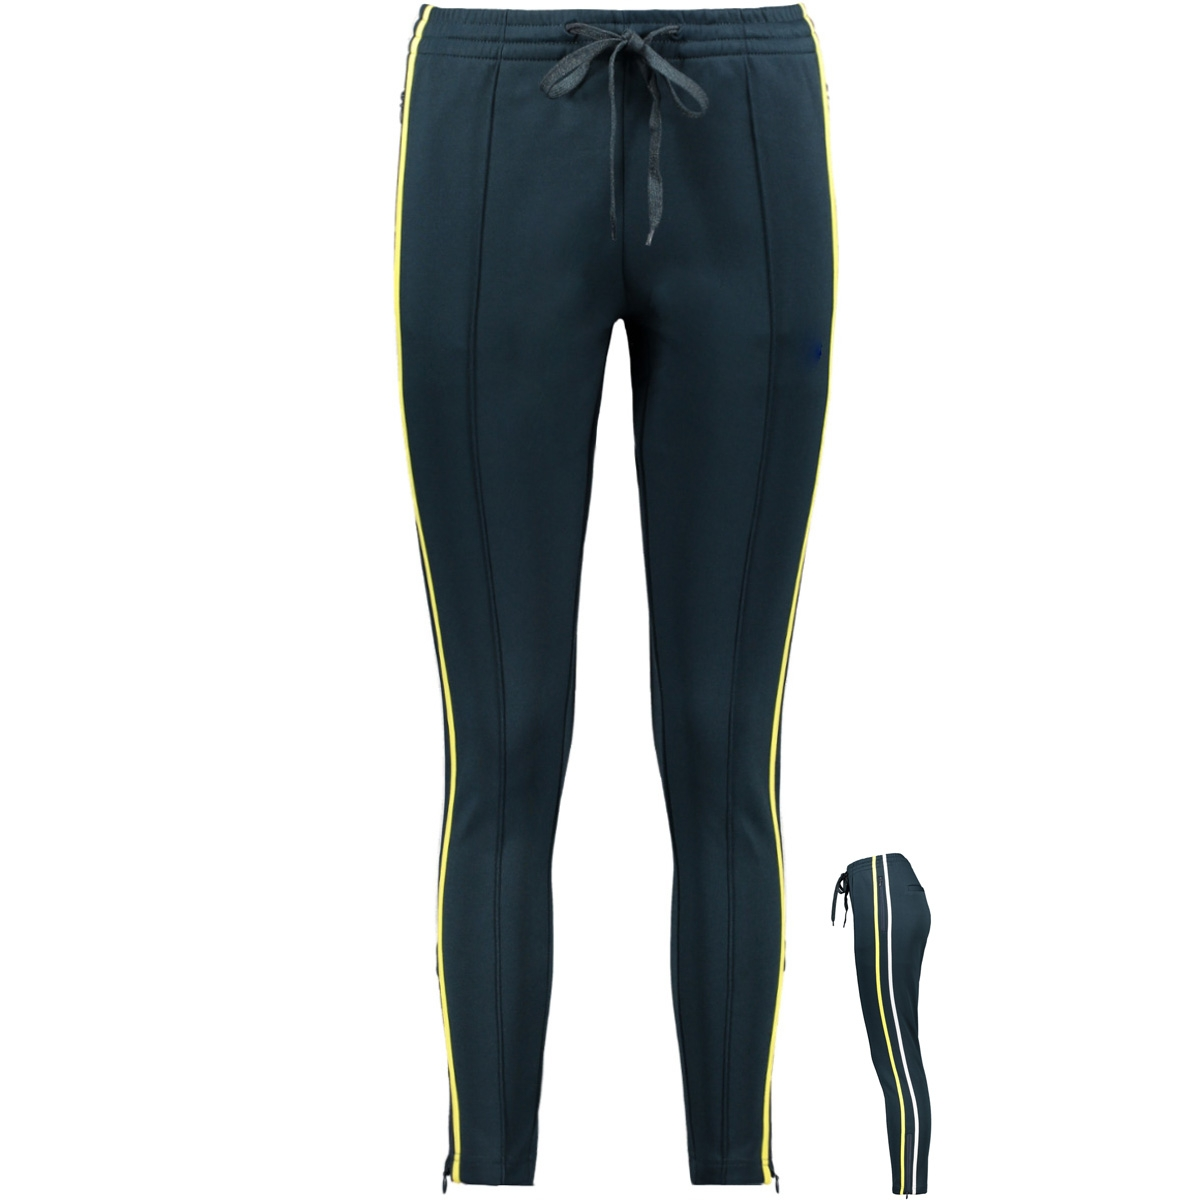 reed jogg s19 1 5230 circle of trust broek 5230 vintage